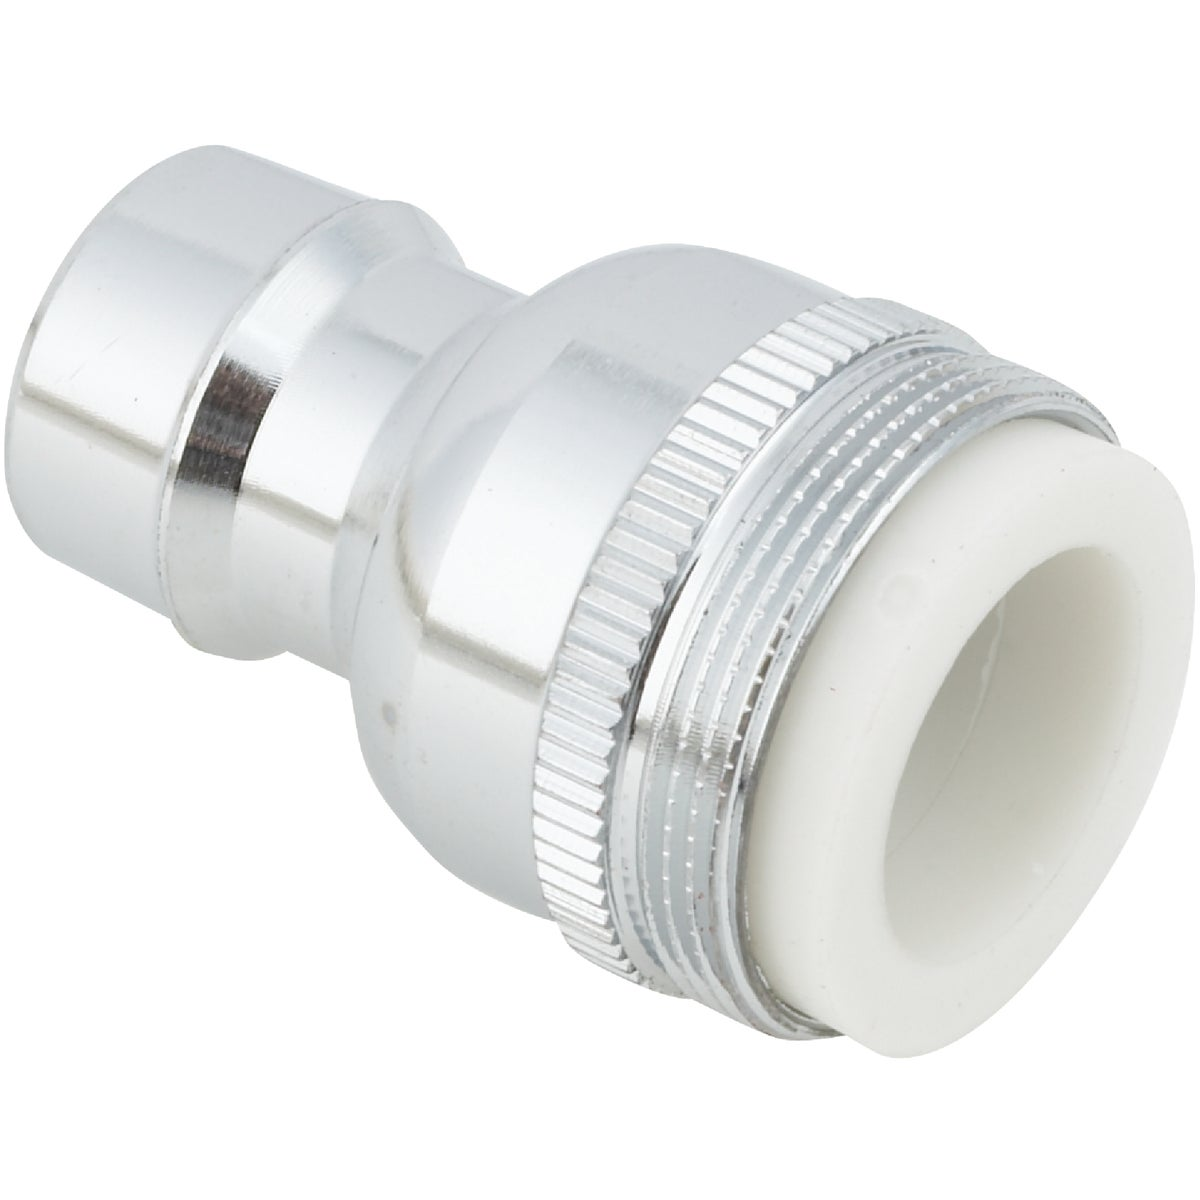 dib Global Sourcing Do it Dual Thread Dishwasher Faucet Aerator Adapter, Low Lead-CHRM DISHWASHER AD at Sears.com